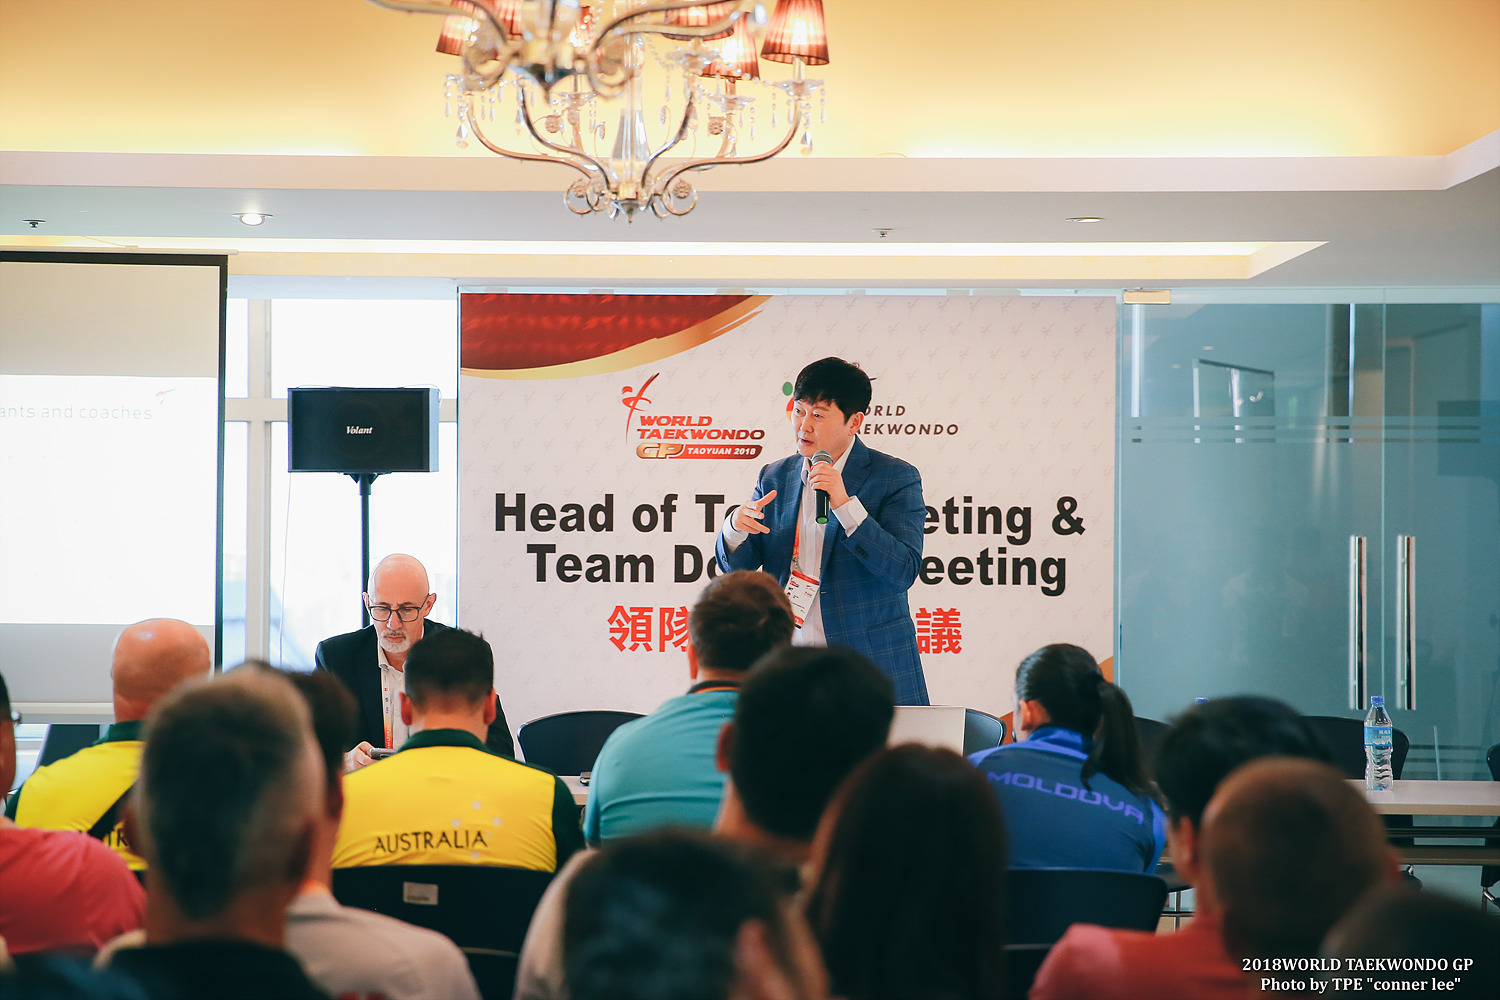 Songchul Kim, Chair of WT Referee Committee address at the Head of Team Meeting during 2018 WT Taoyuan GP